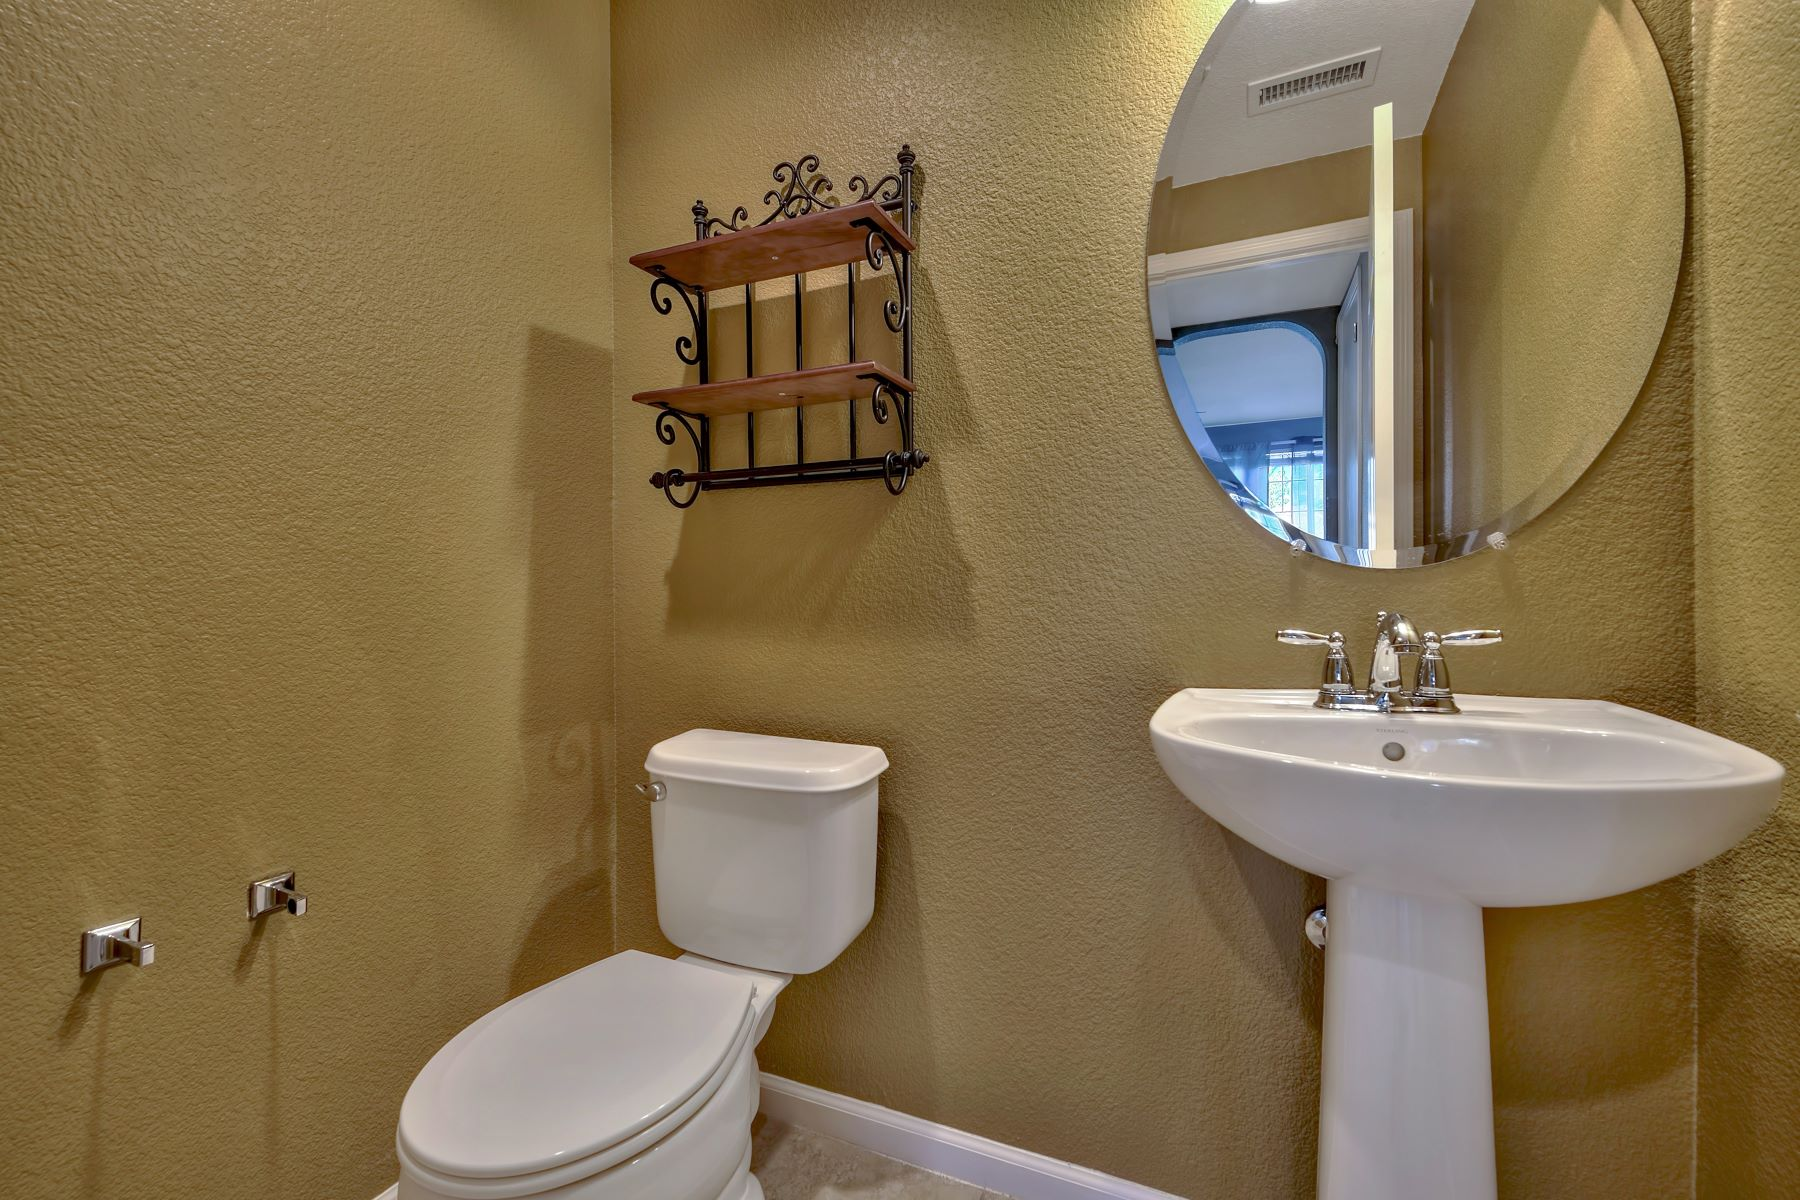 Additional photo for property listing at 6571 Voyage Drive, Sparks, NV 6571 Voyage Drive Sparks, Nevada 89436 United States